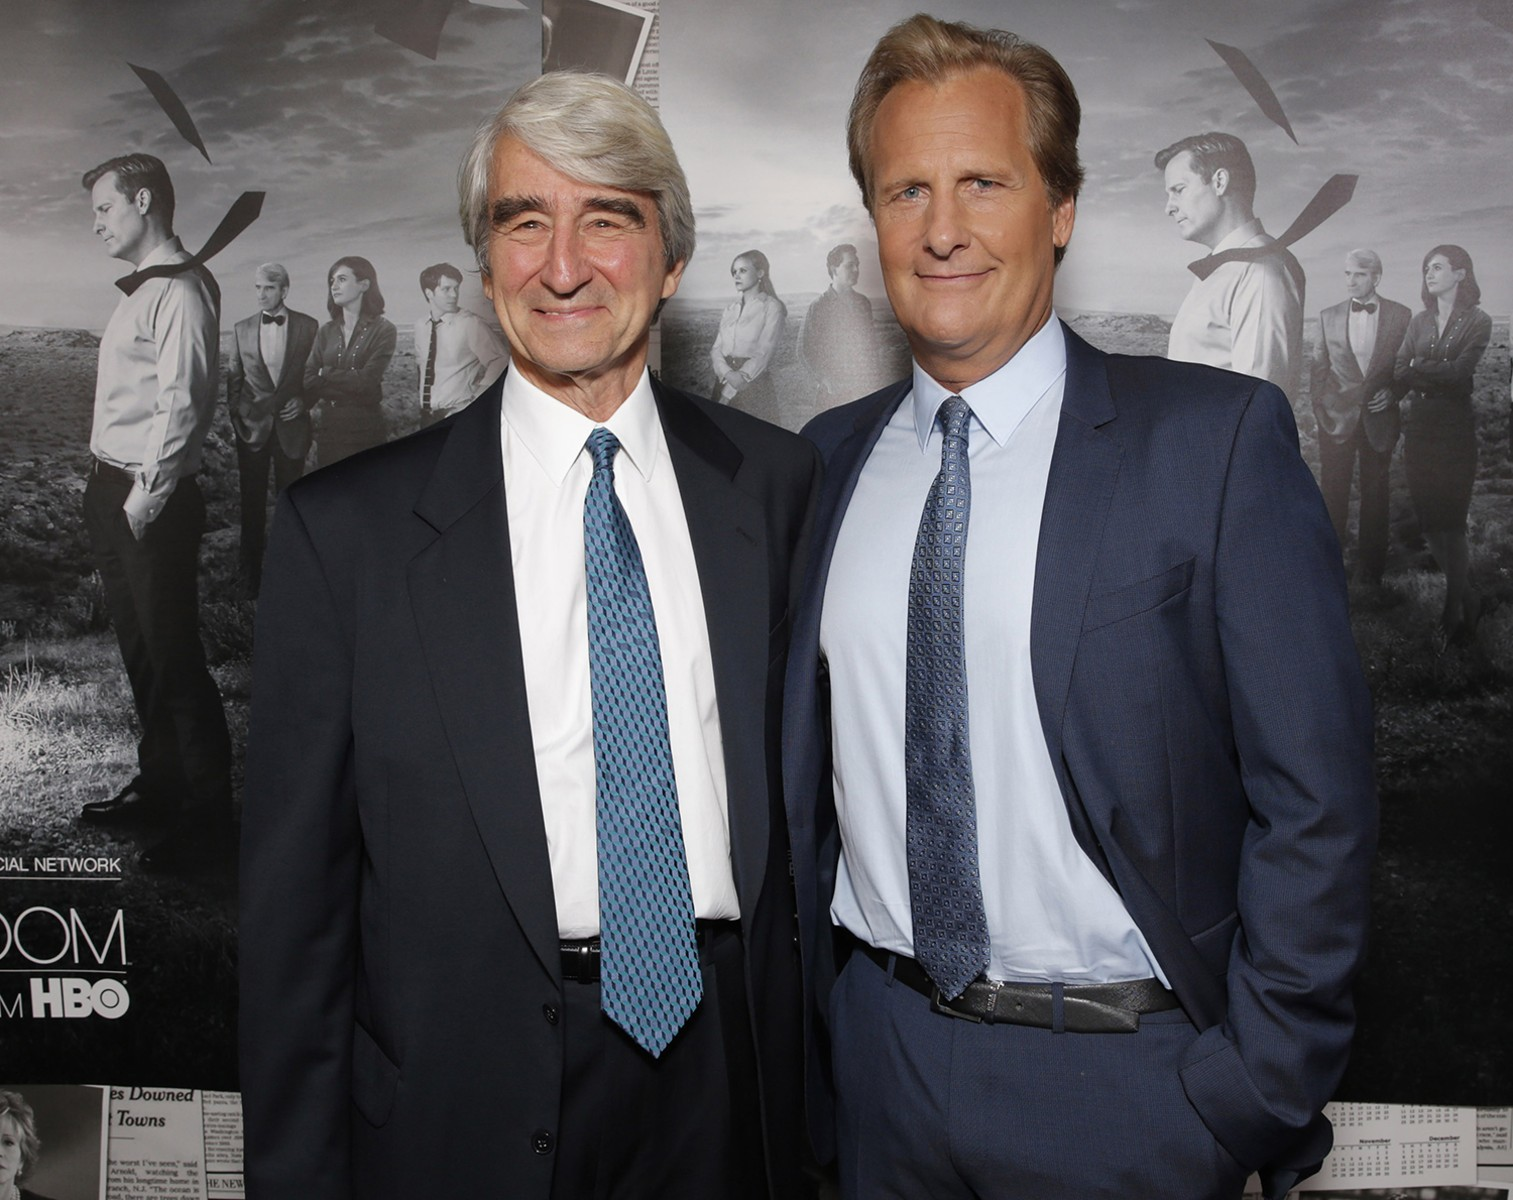 Image: Sam Waterston, Jeff Daniels